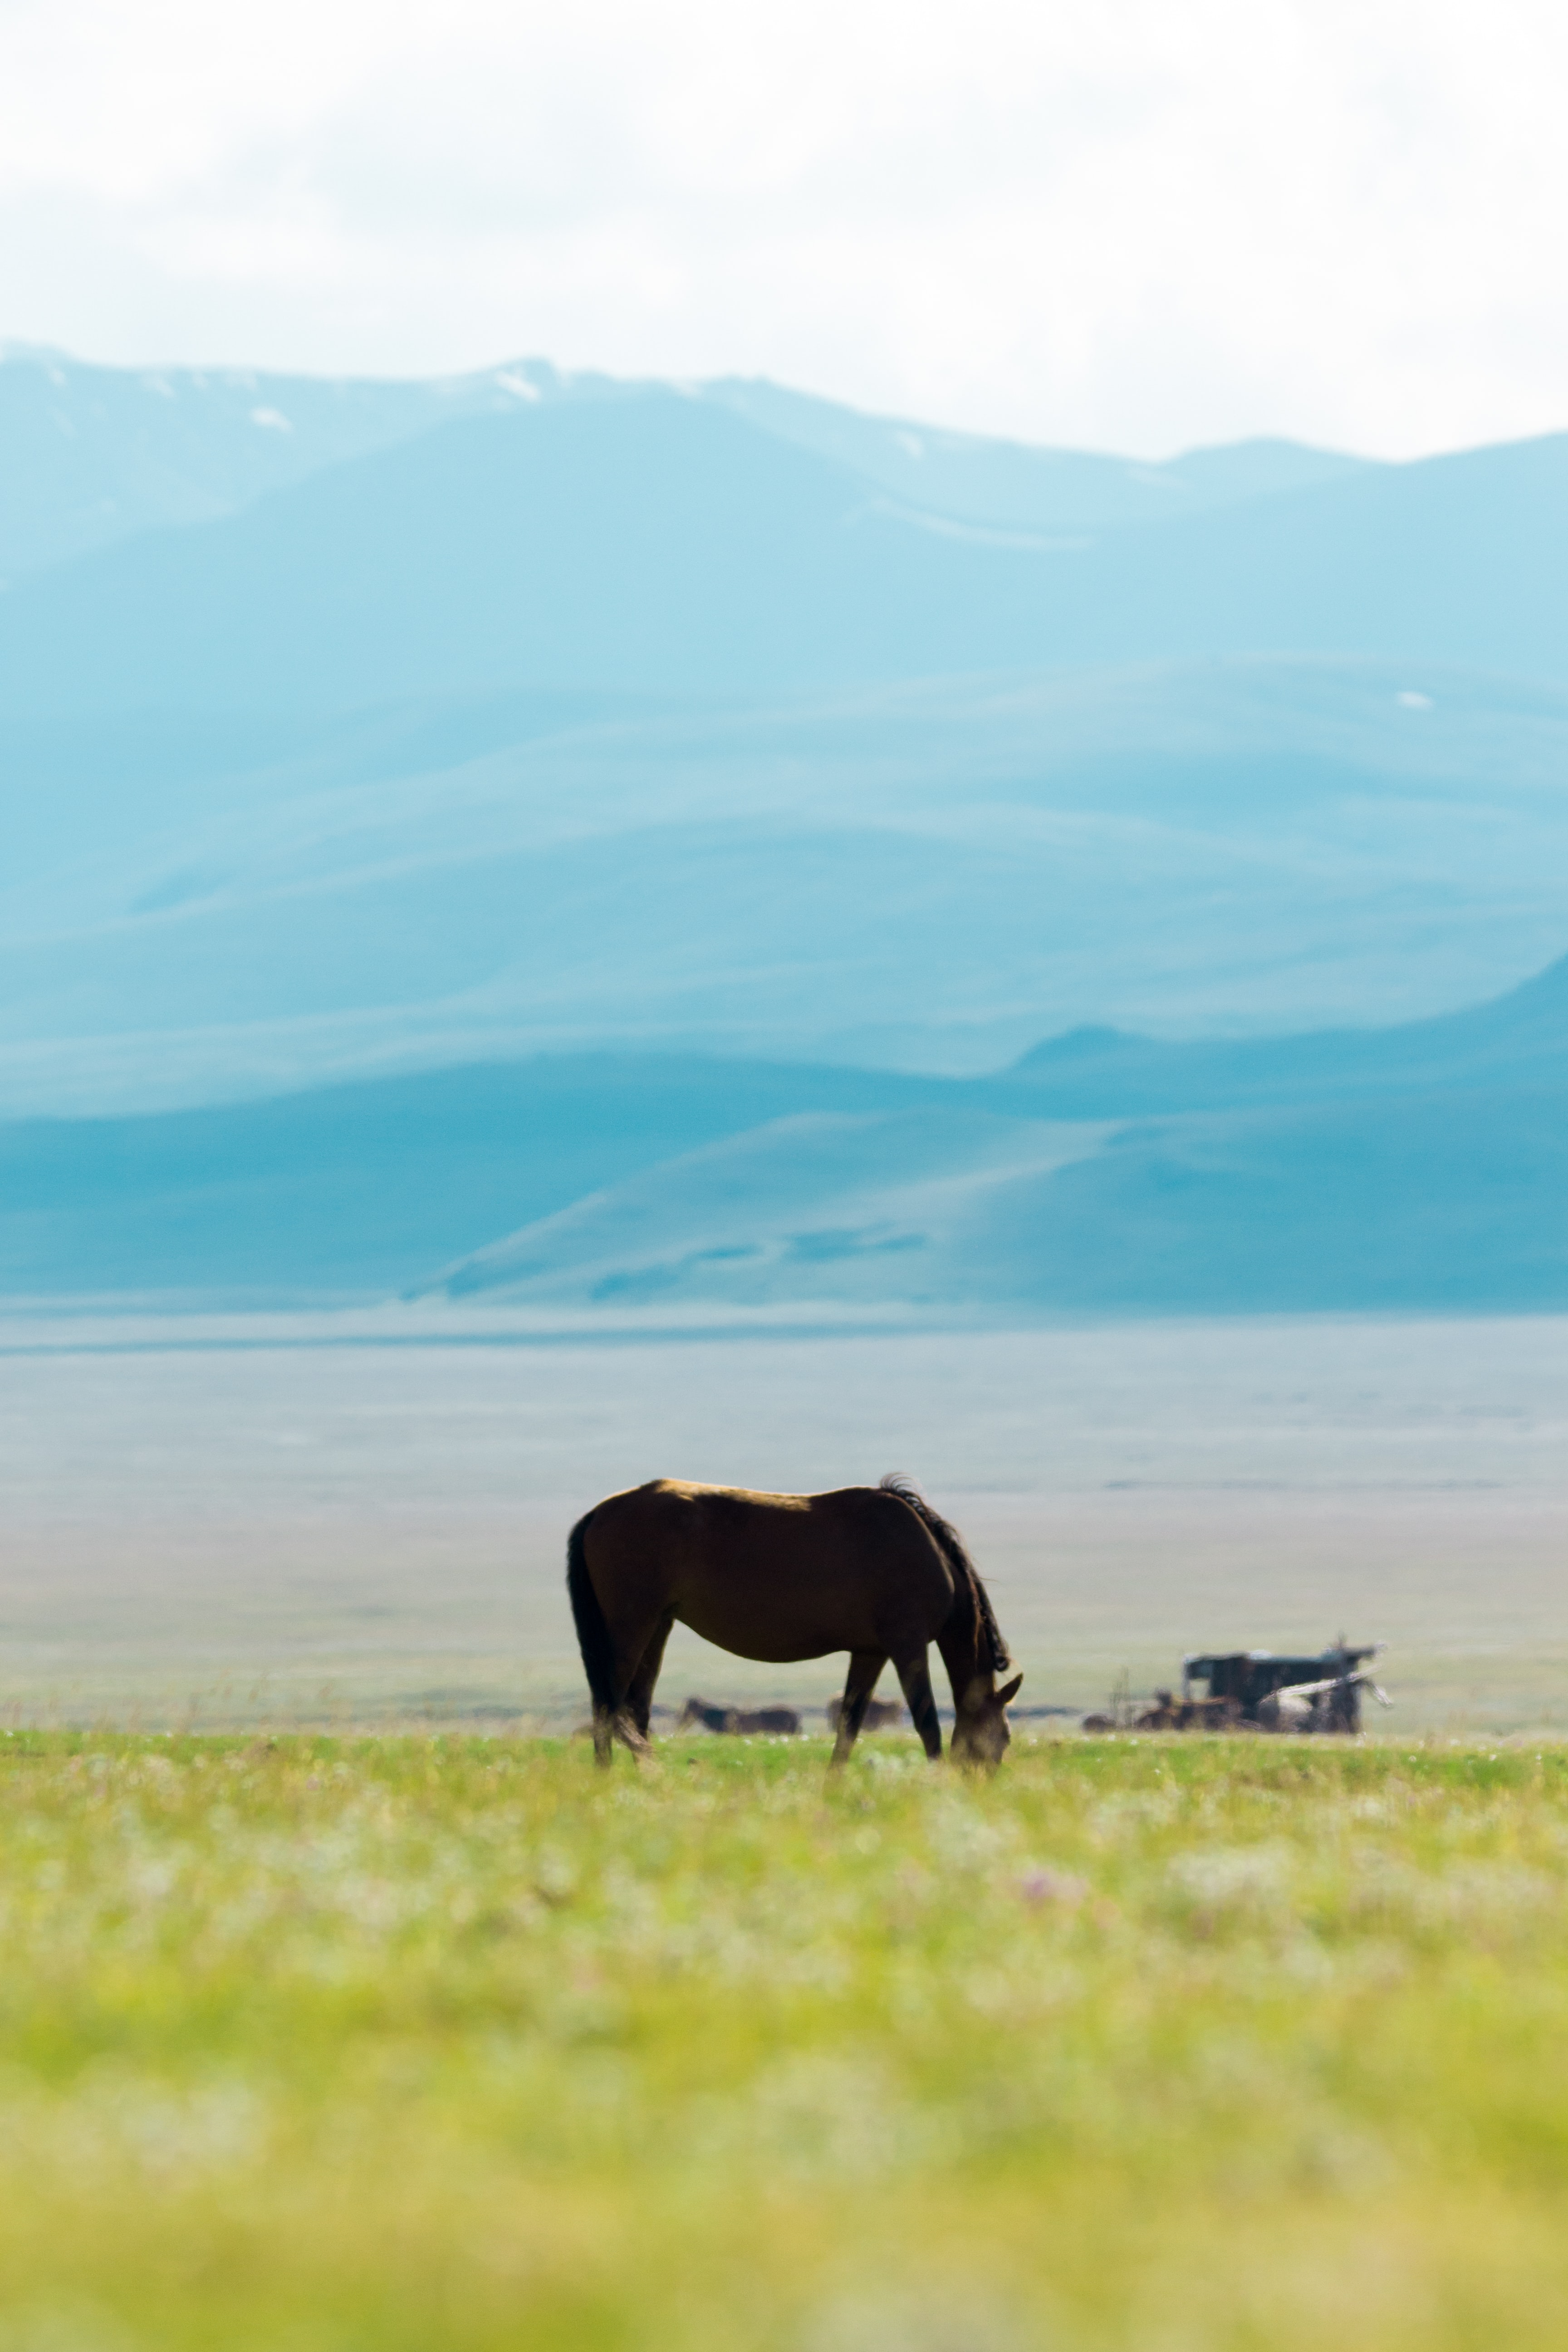 horse eating grass on field at daytime